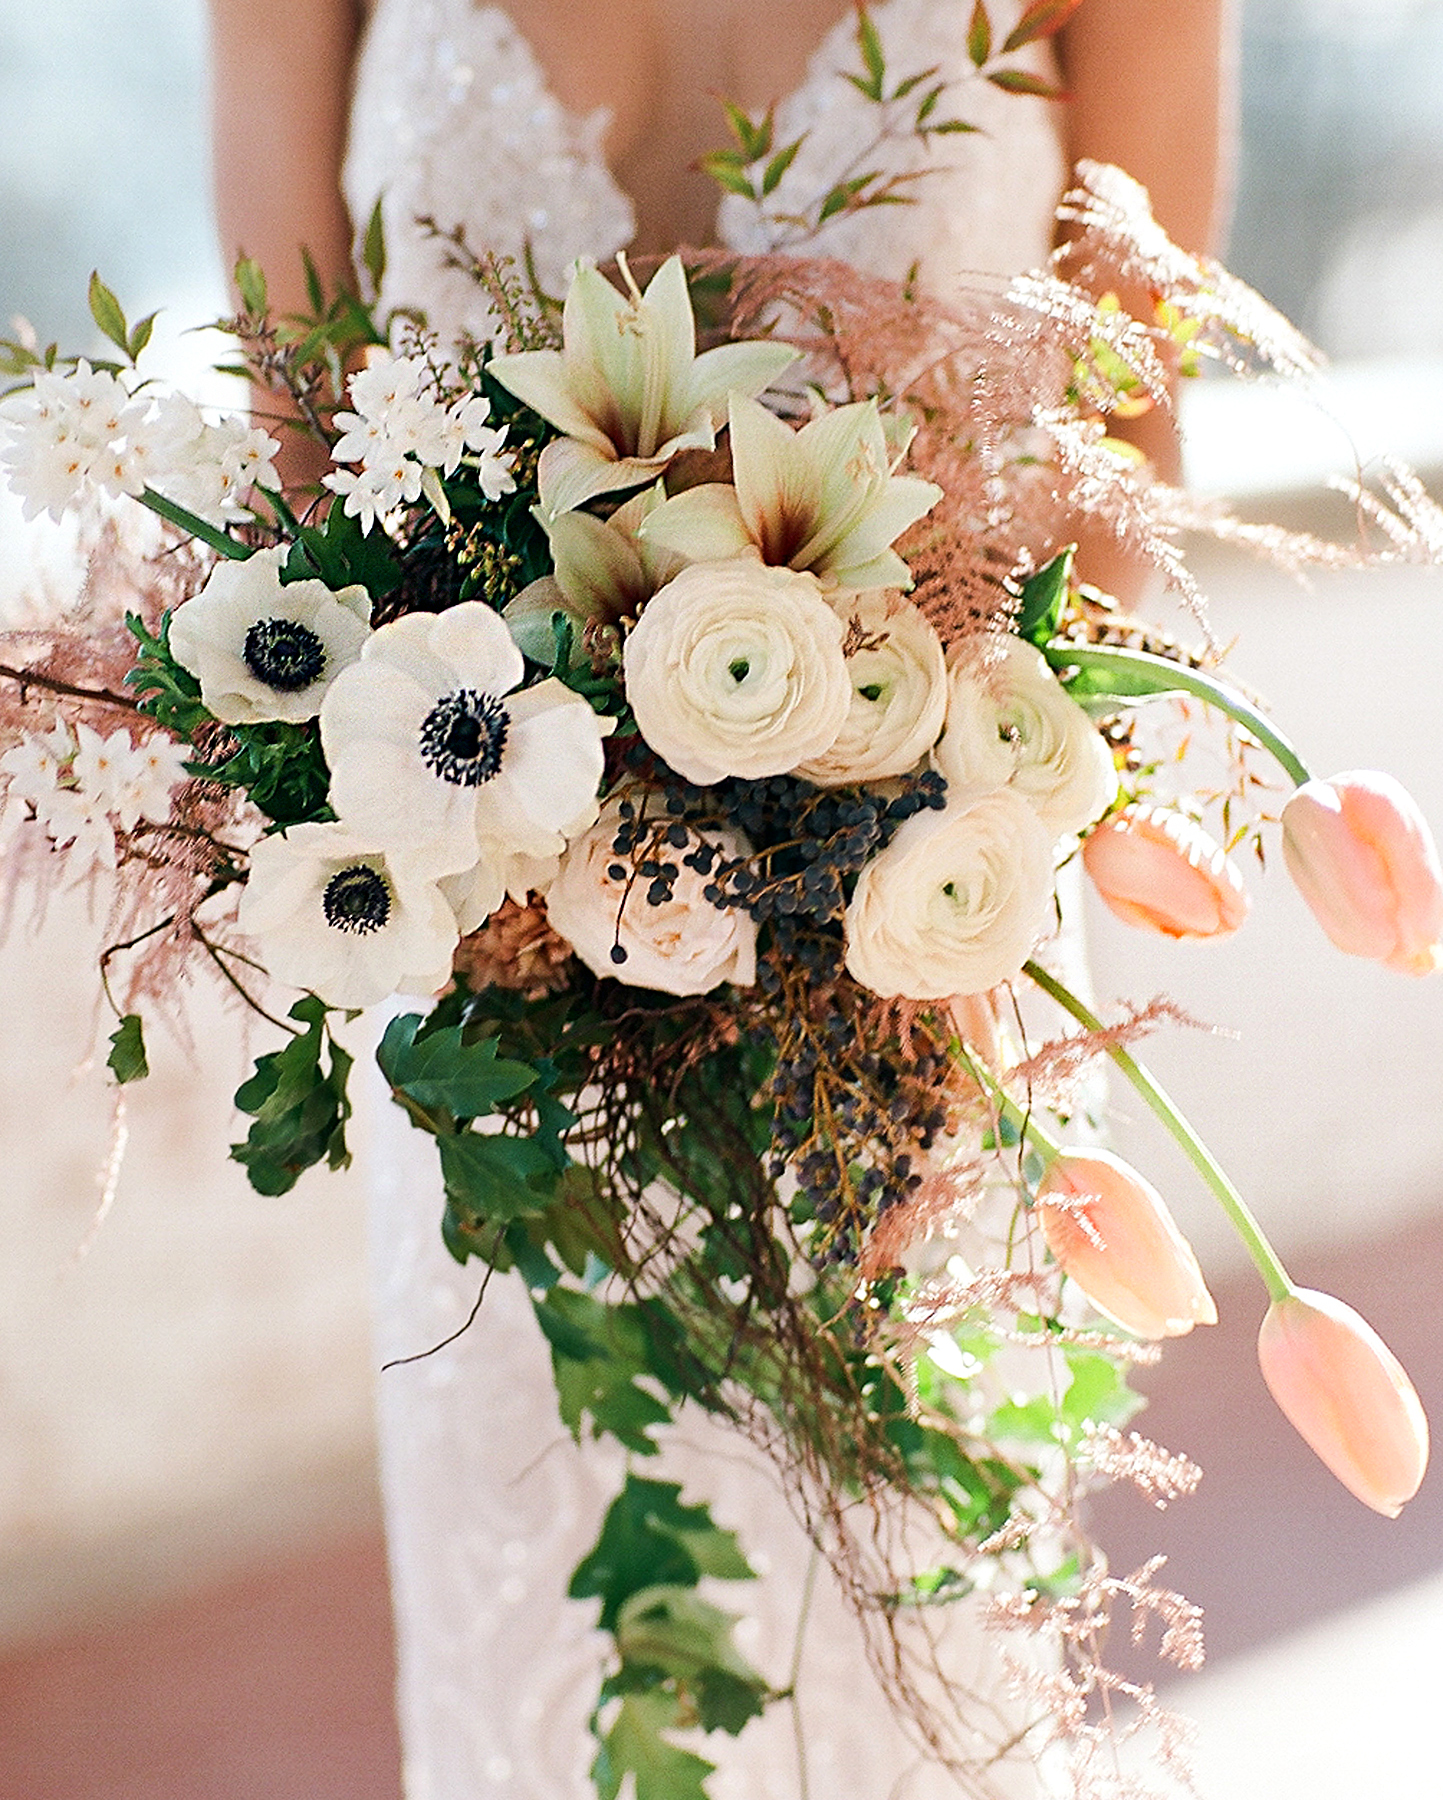 Carry a Cascading Bridal Bouquet with Native Blooms